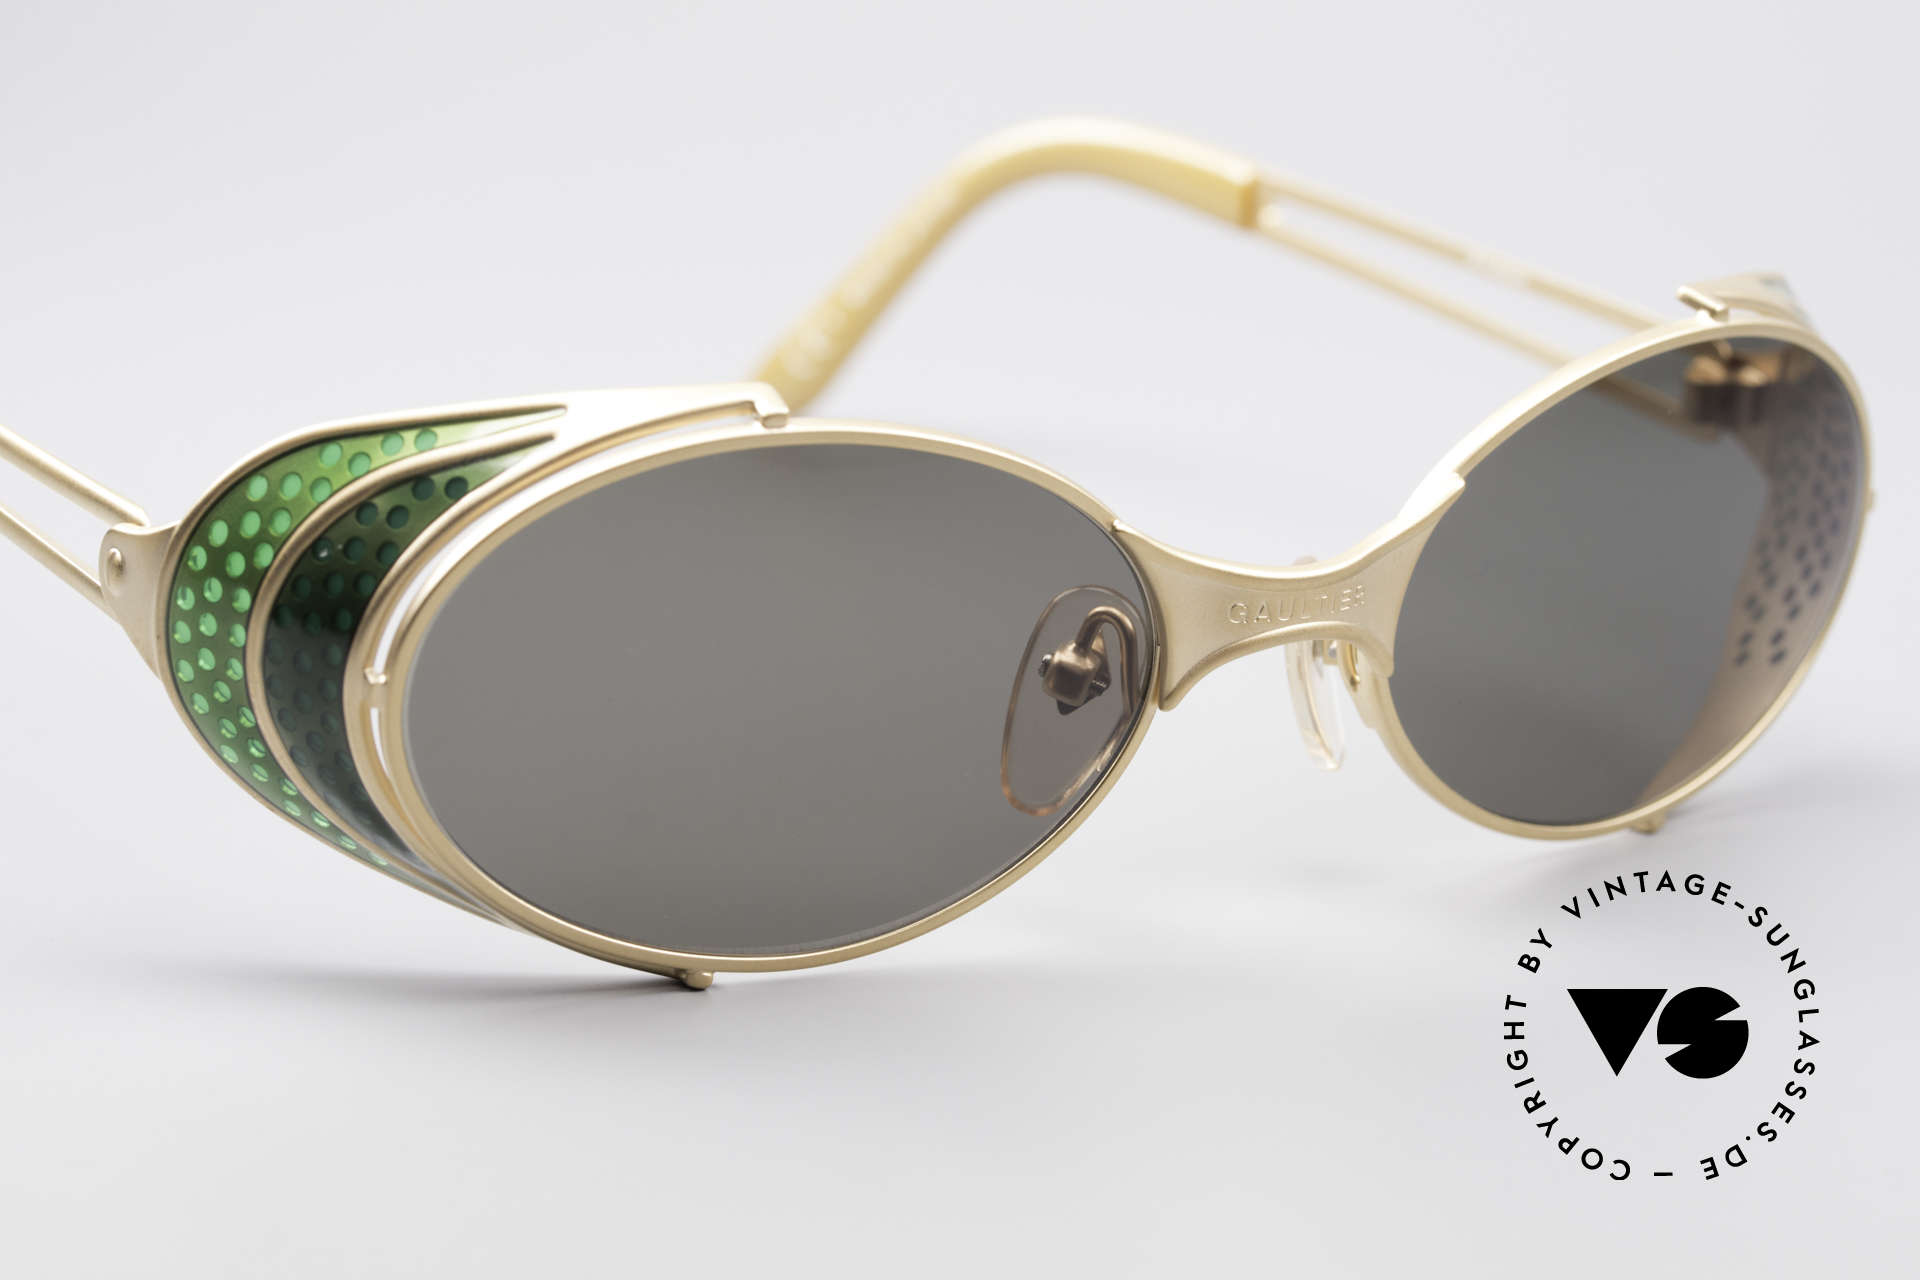 Jean Paul Gaultier 56-7109 Steampunk Sunglasses, unworn rarity (a 'must have' for all art & fashion lovers), Made for Men and Women